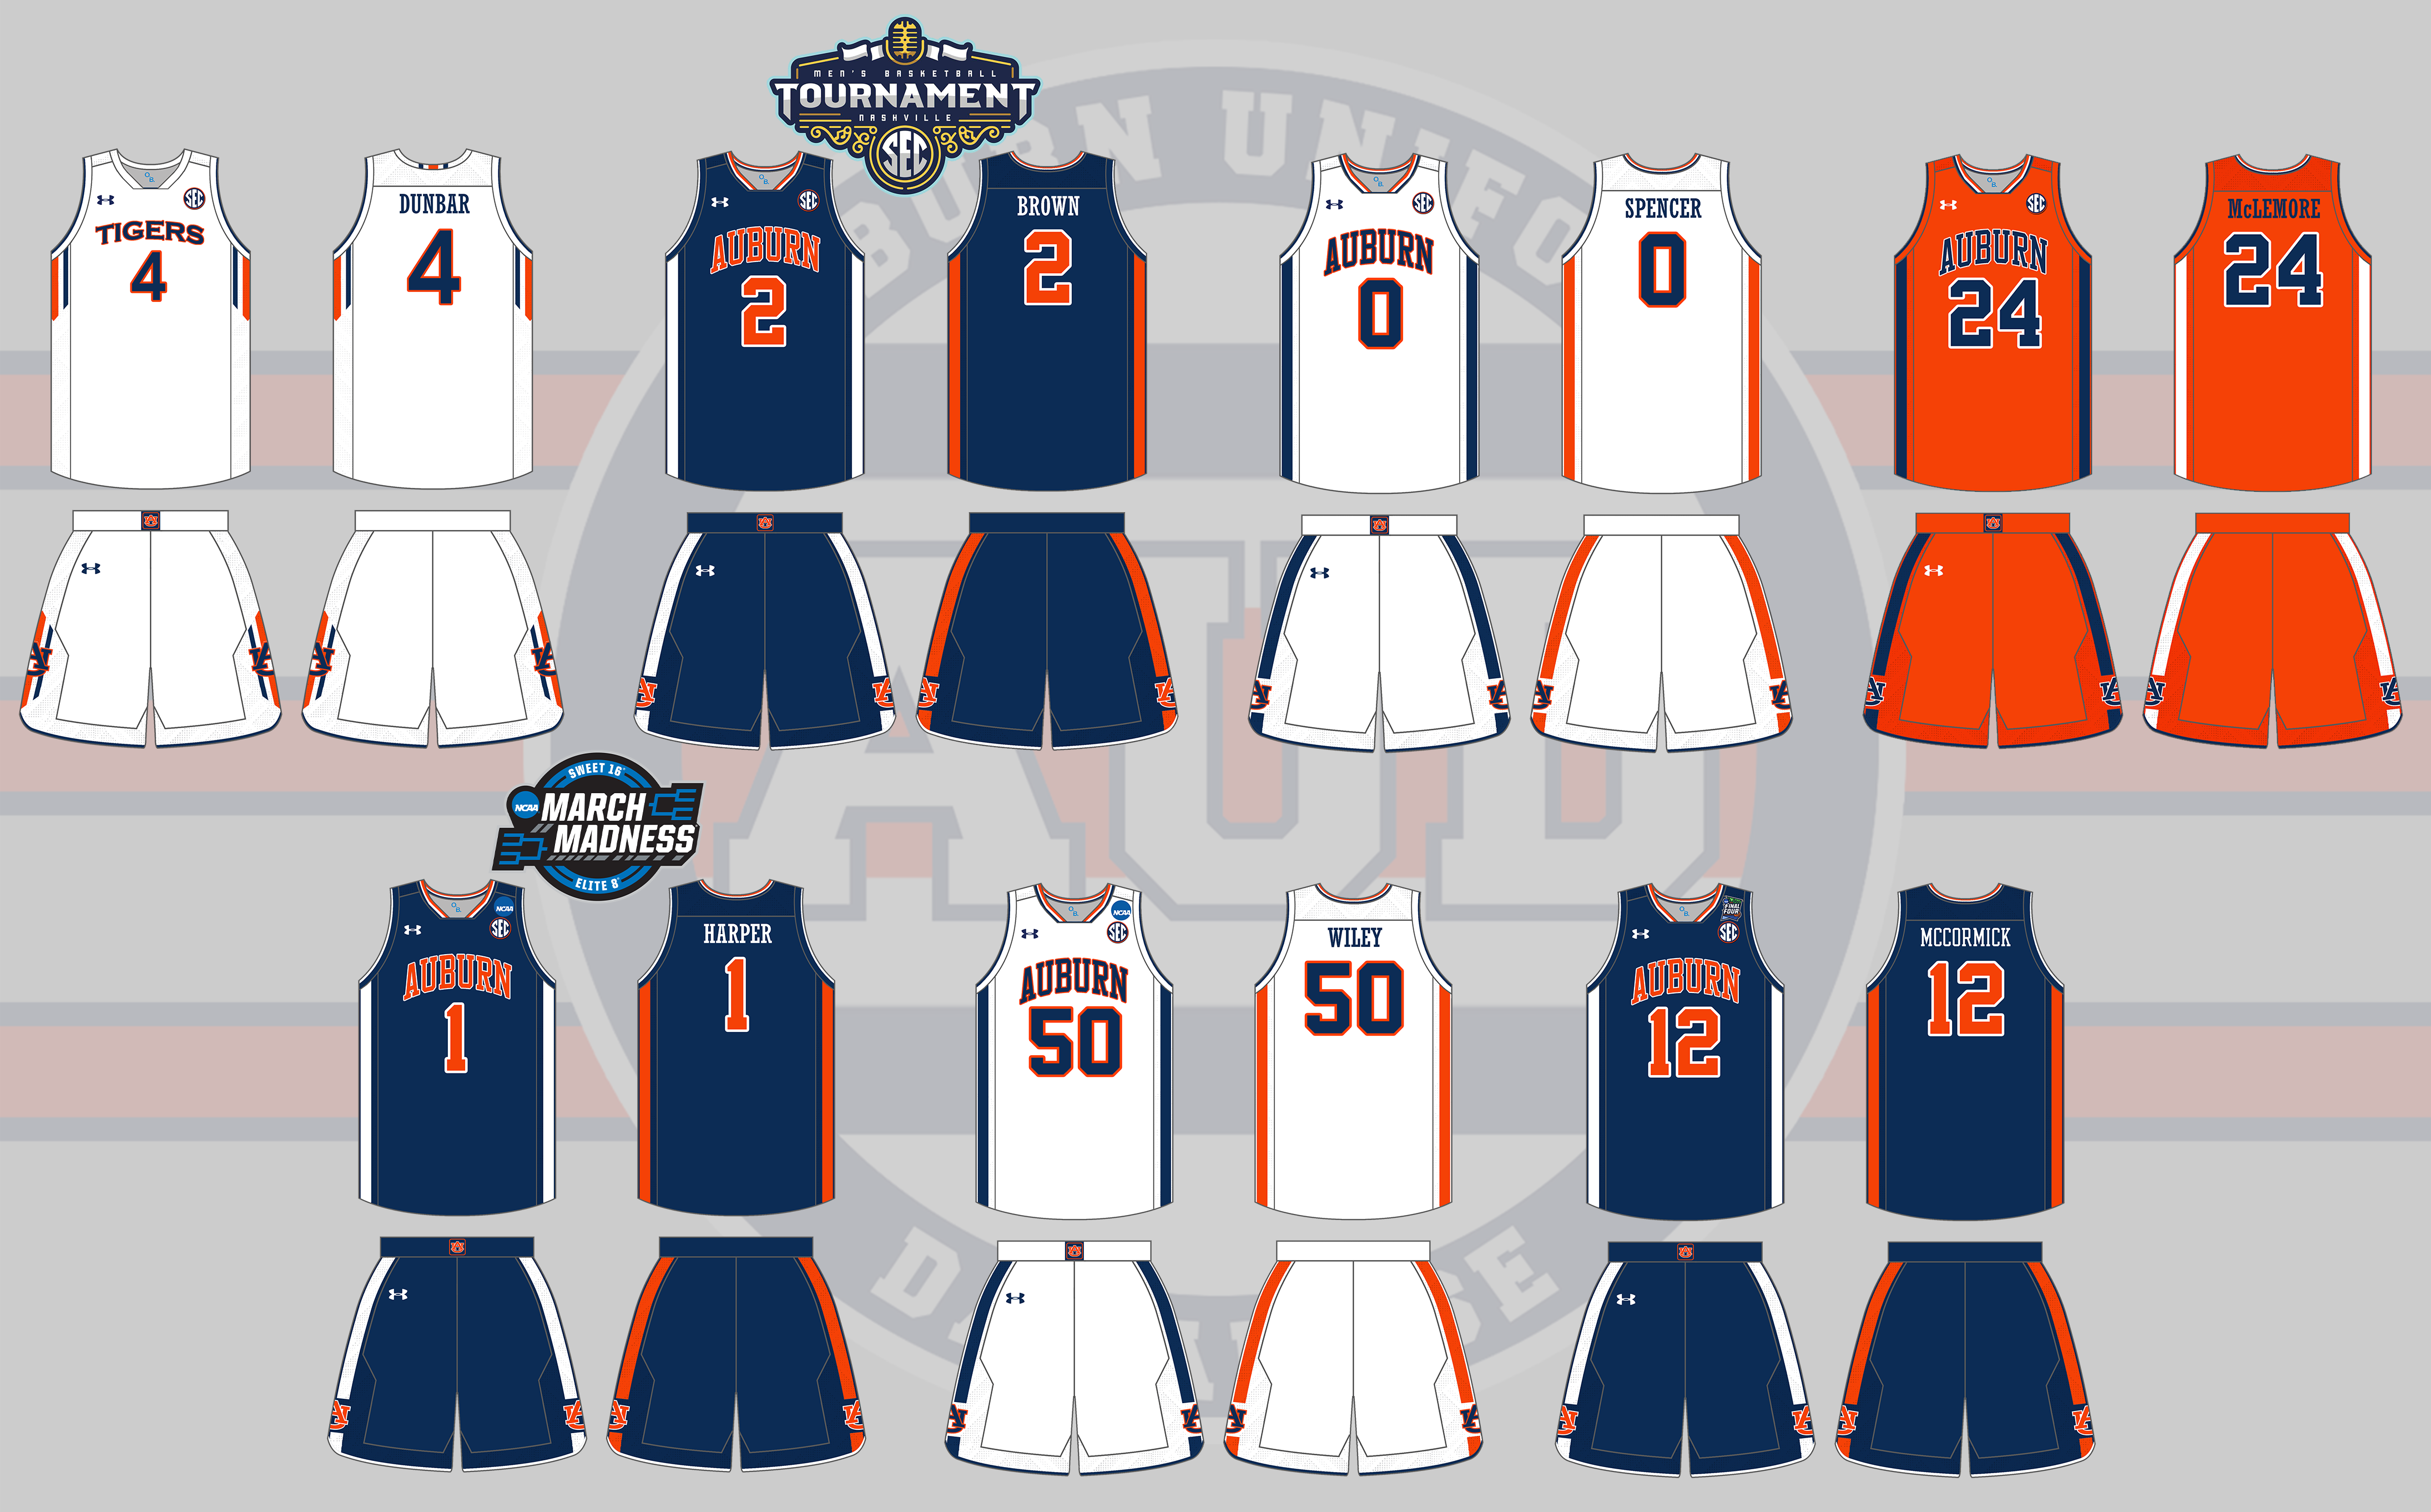 2012 Auburn Under Armour Basketball Uniforms